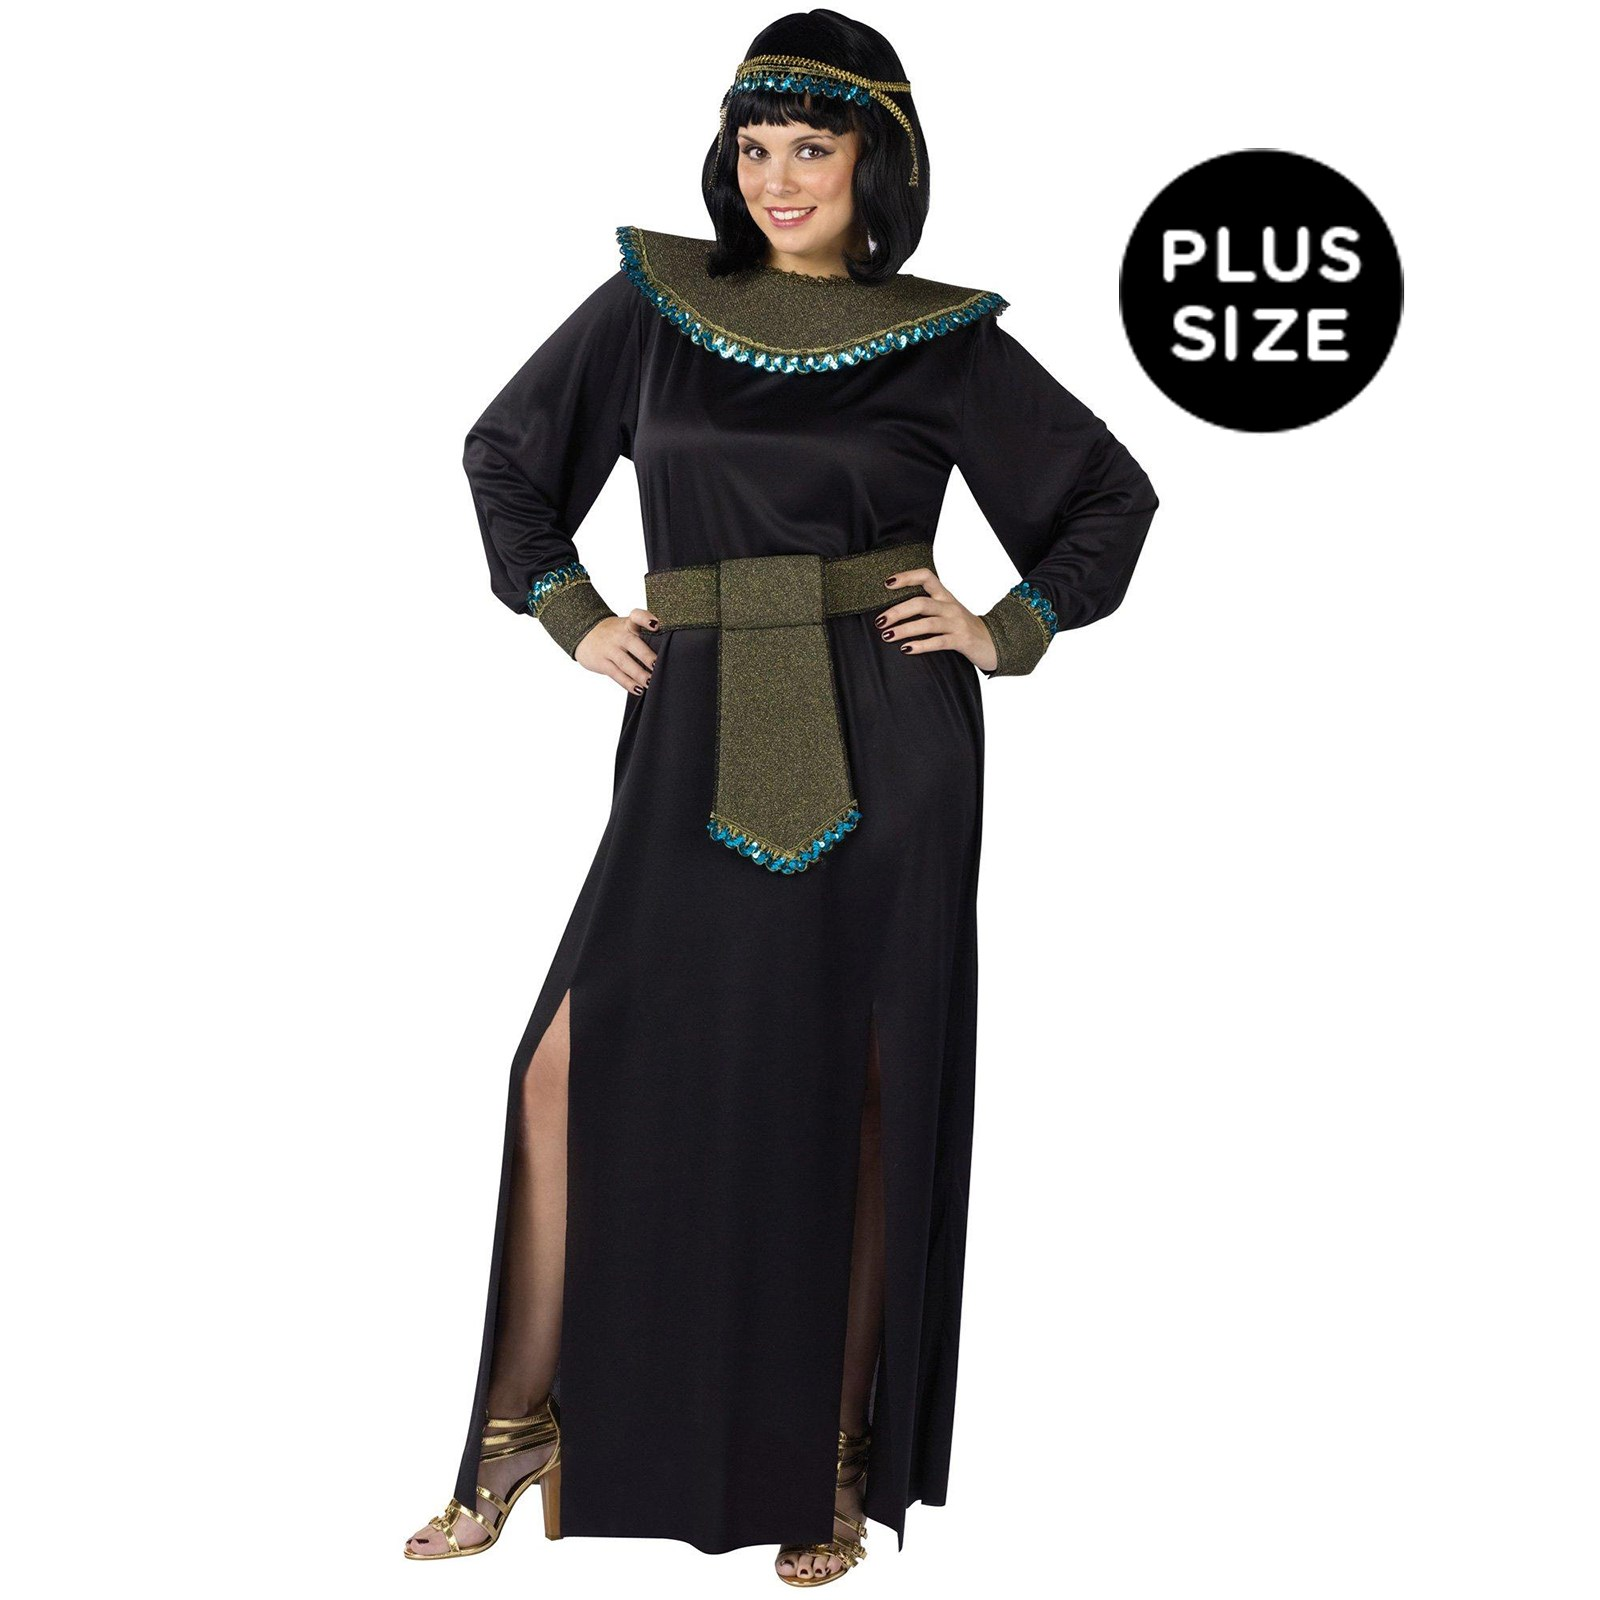 Black/Gold Cleopatra Adult Plus Costume